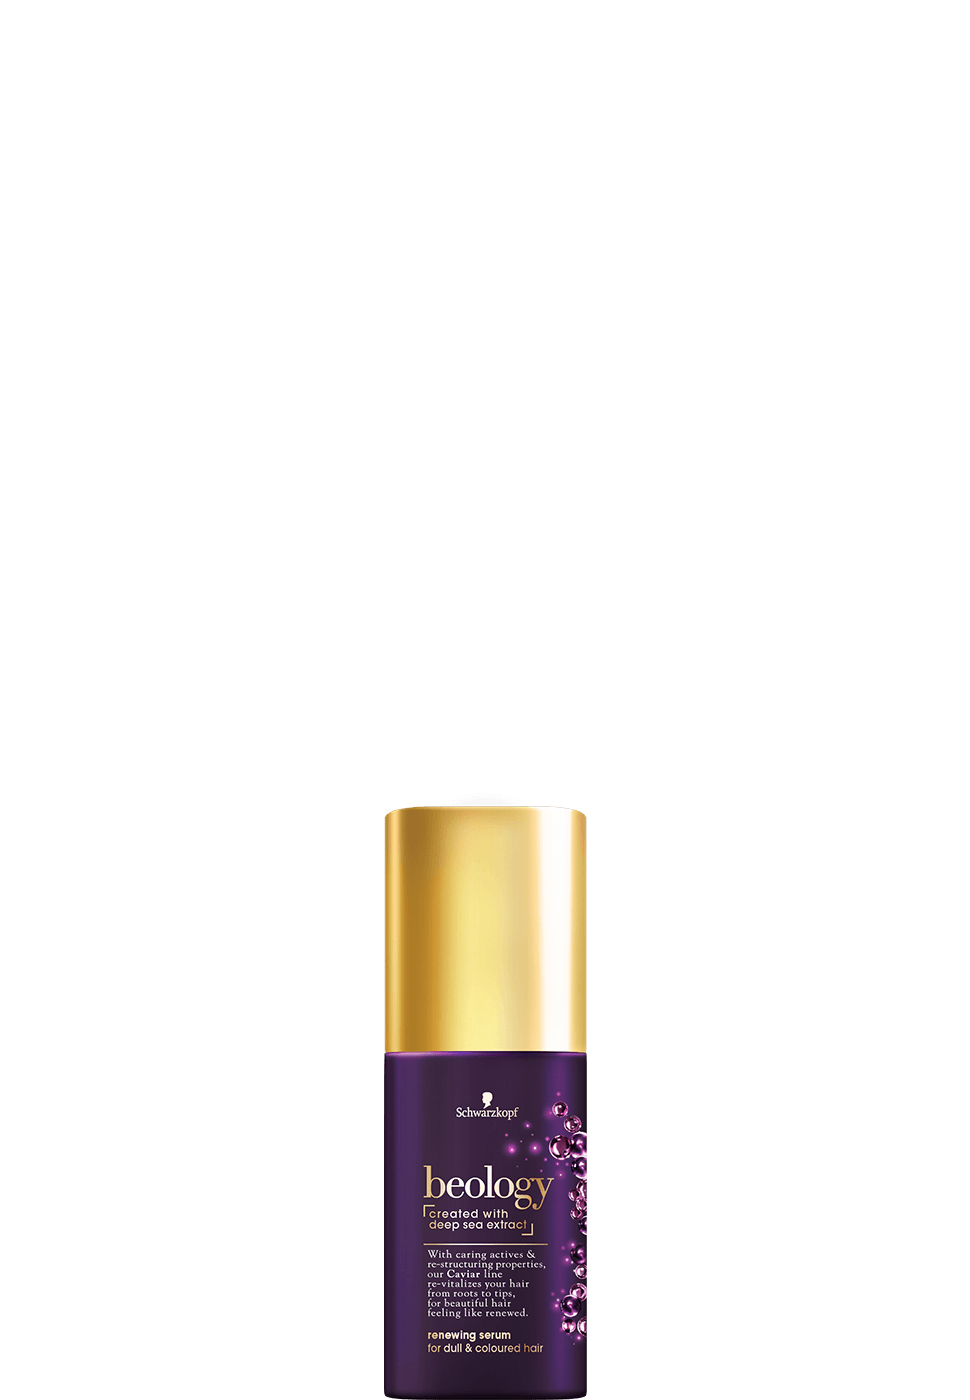 beology_com_caviar_serum_970x1400